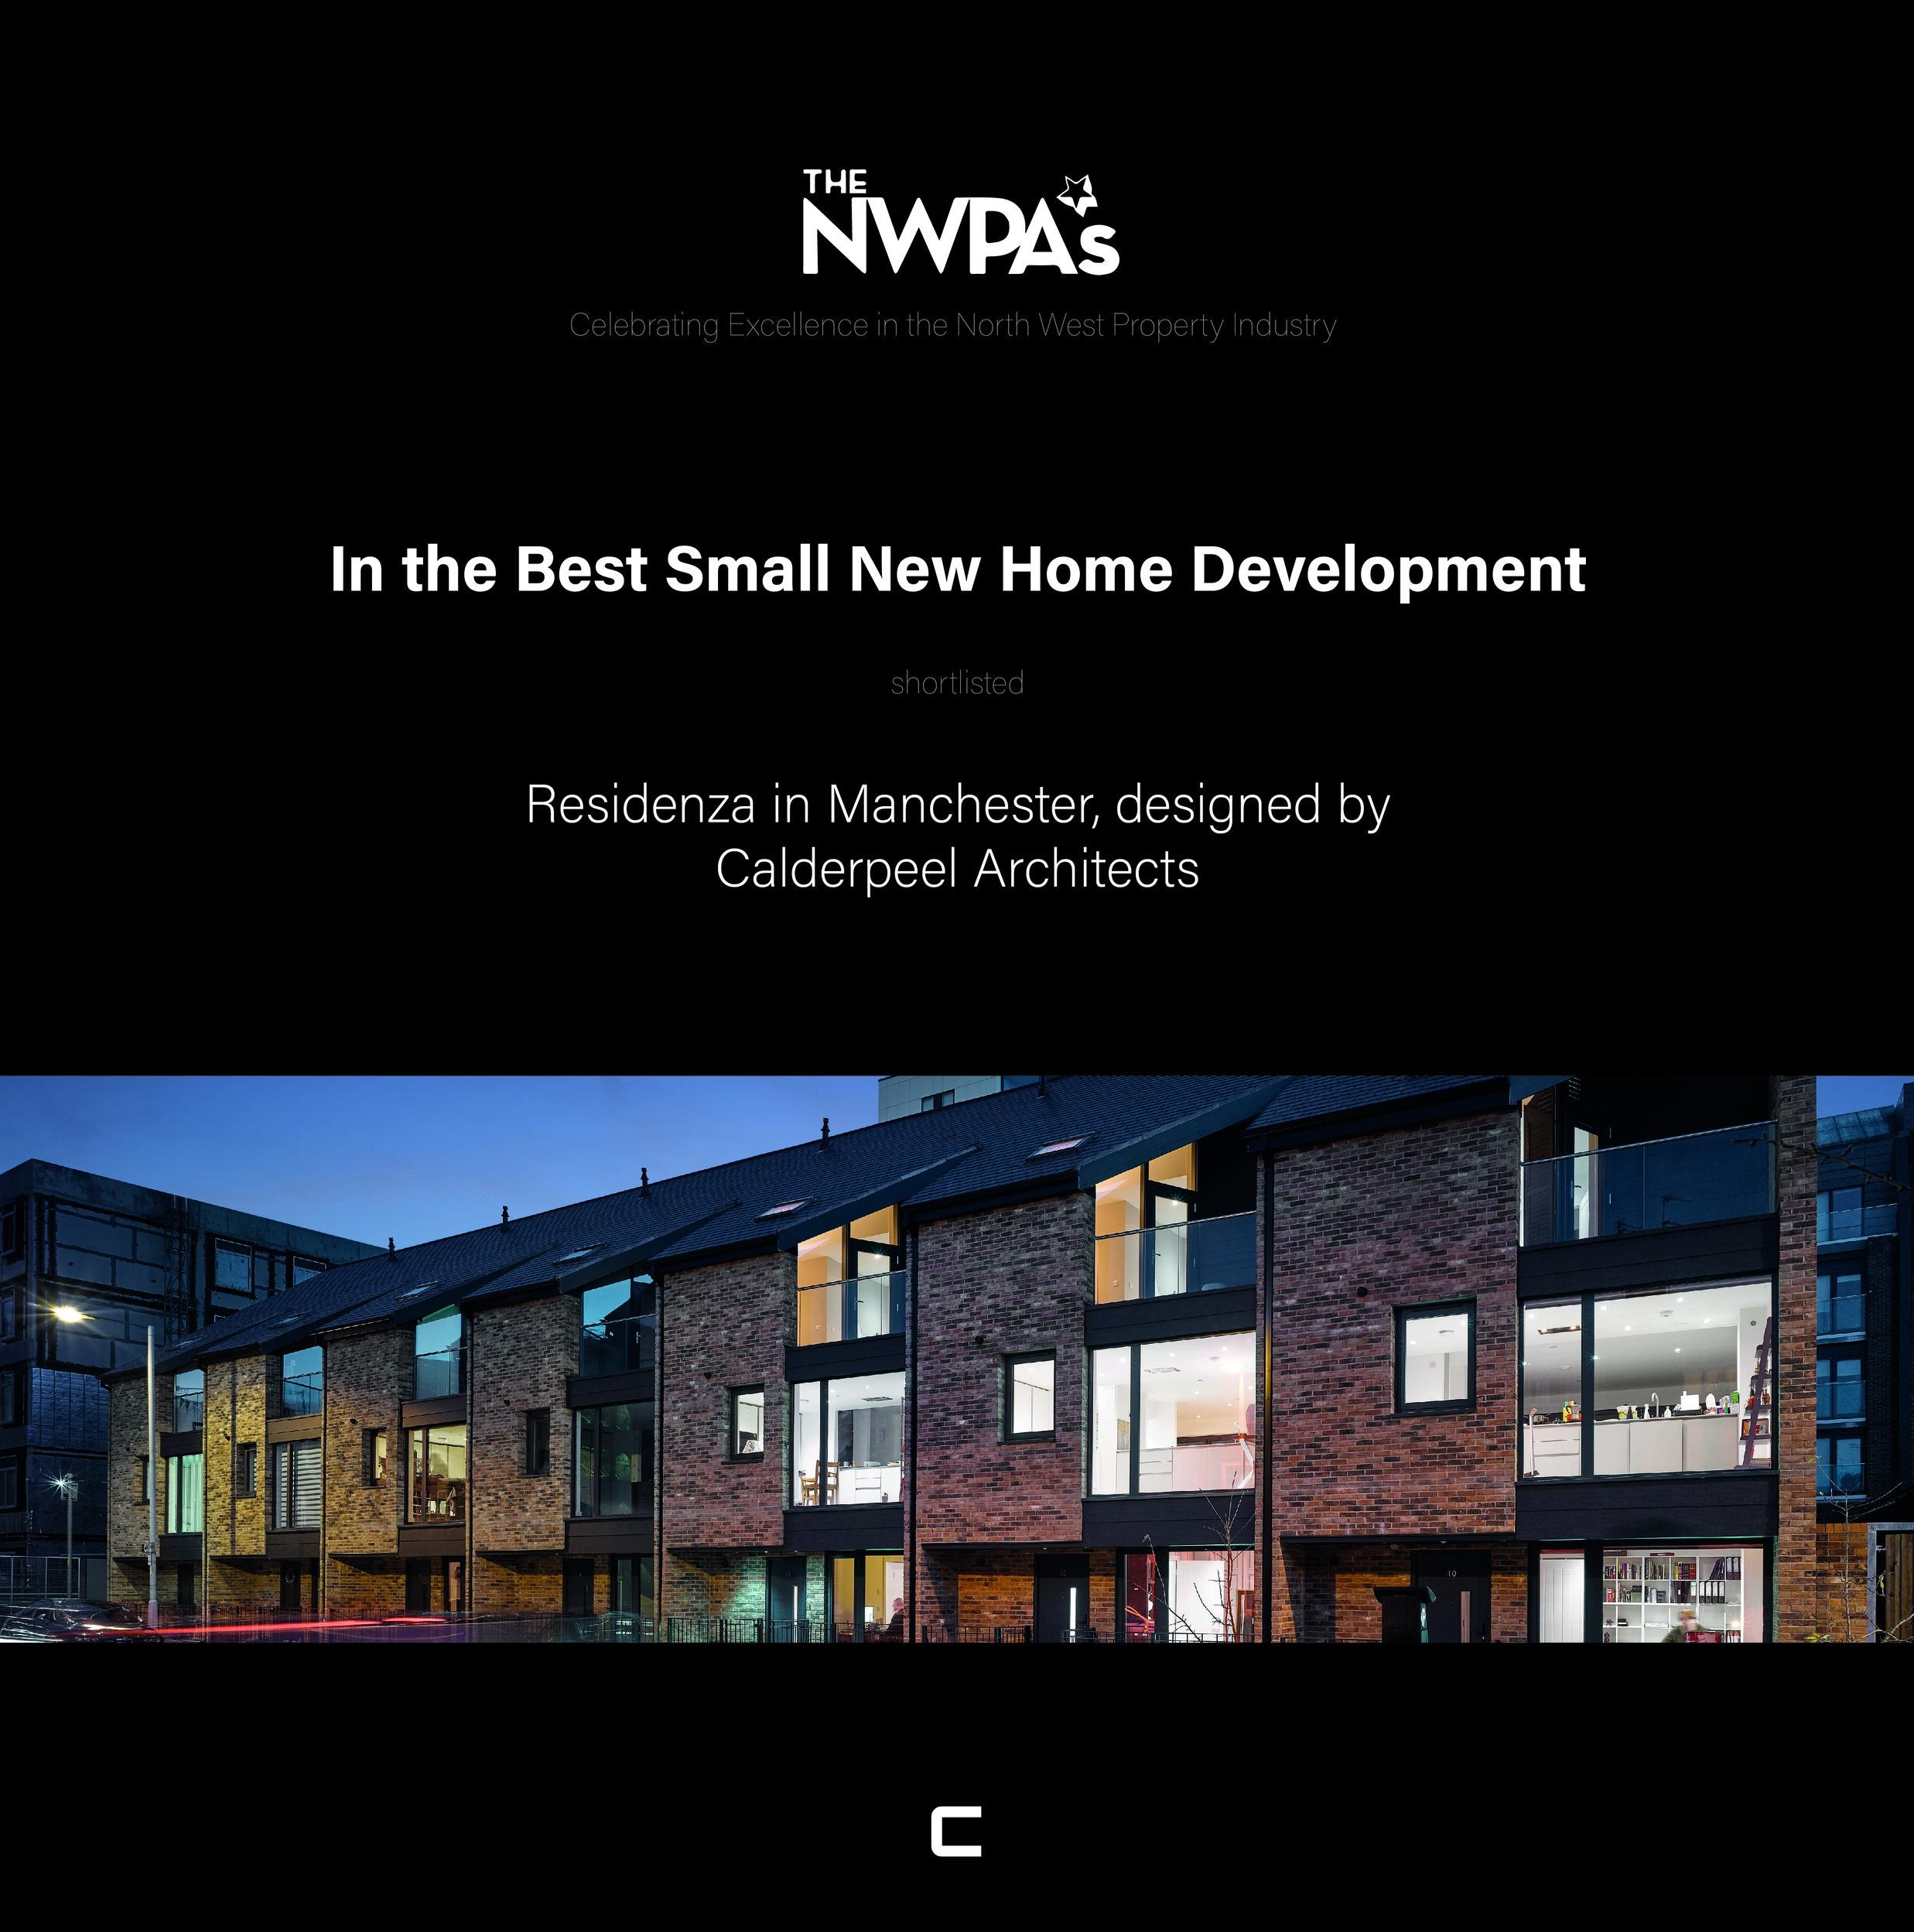 20/09/2018   Residenza has been shortlisted in the Best Small New Home Development category at this years NWPA's !